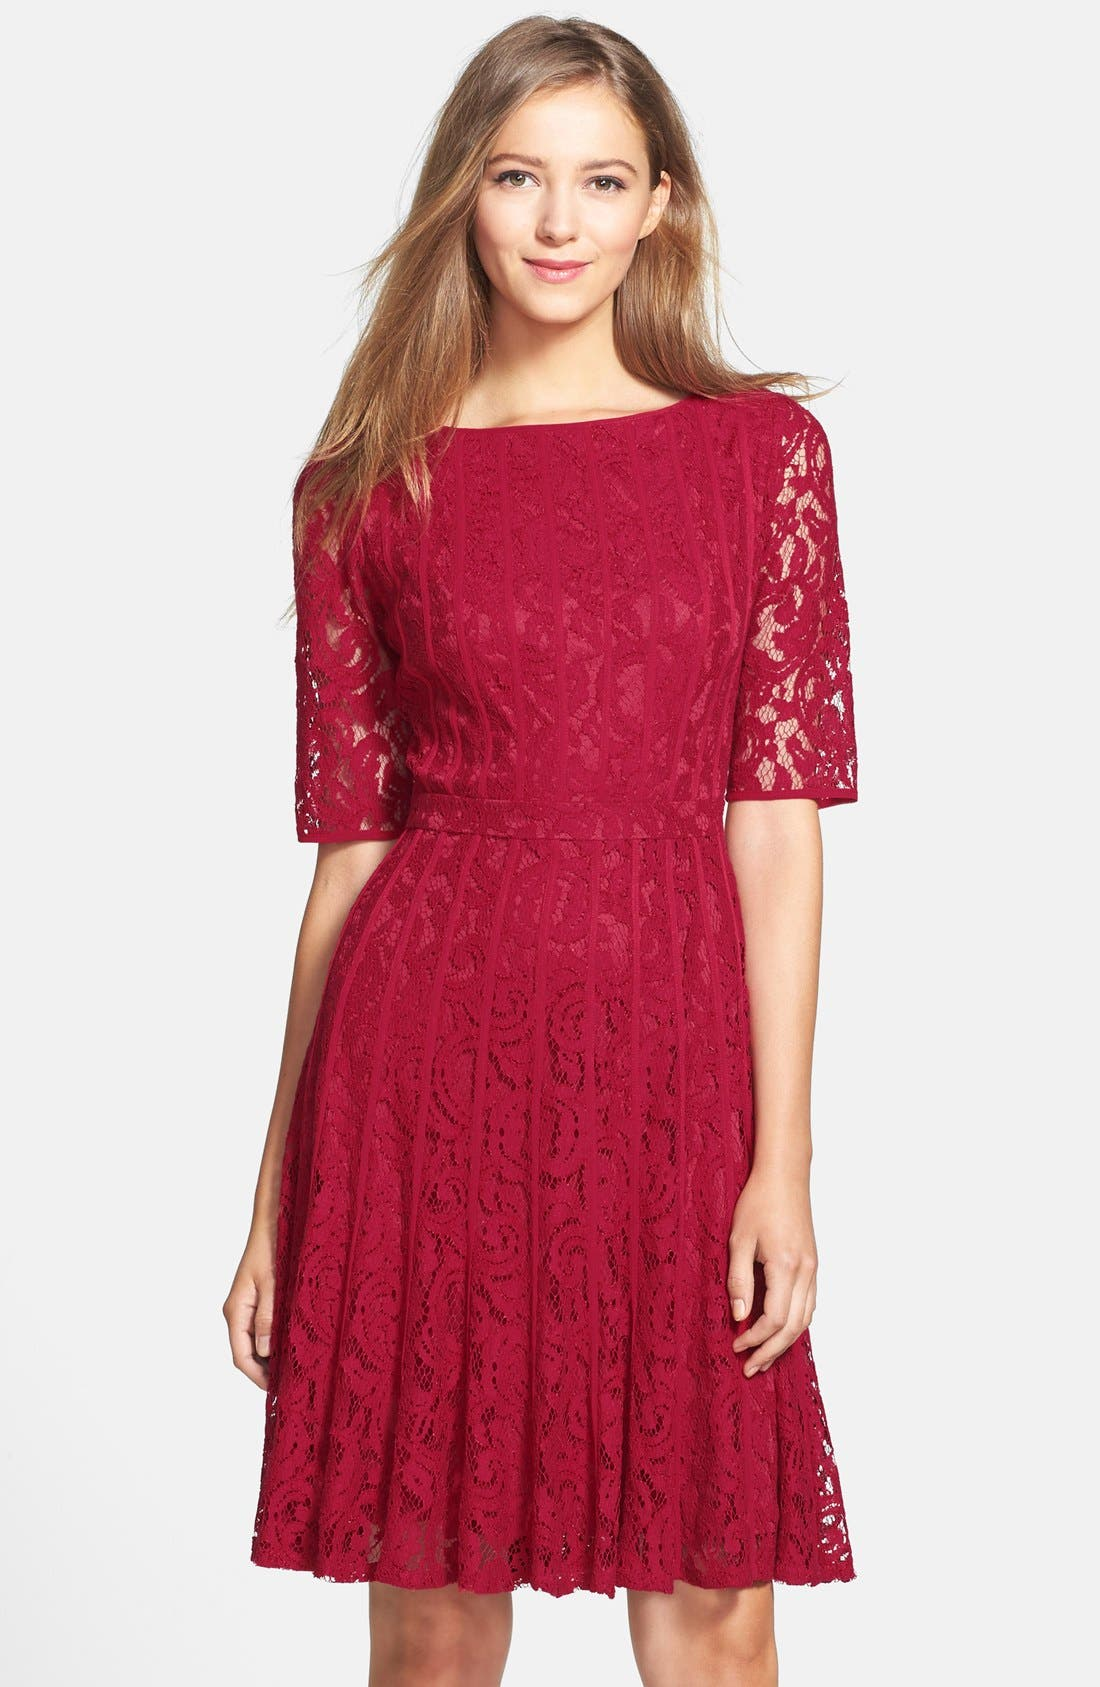 Alternate Image 1 Selected - Adrianna Papell Lace Fit & Flare Dress (Petite)